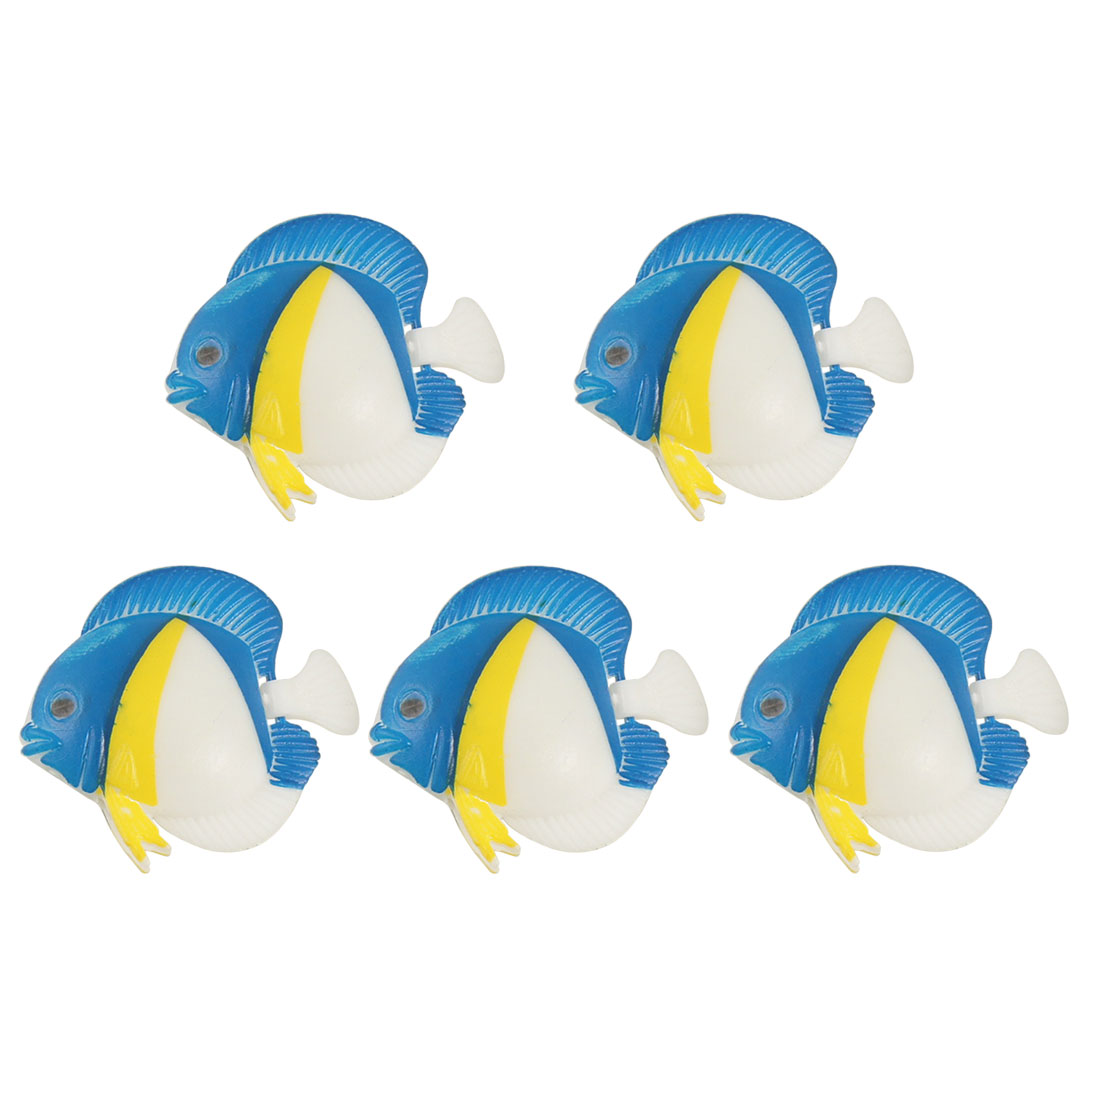 5 Pcs Artificial Floating Wiggly Tail Blue Fishes Ornament for Aquarium